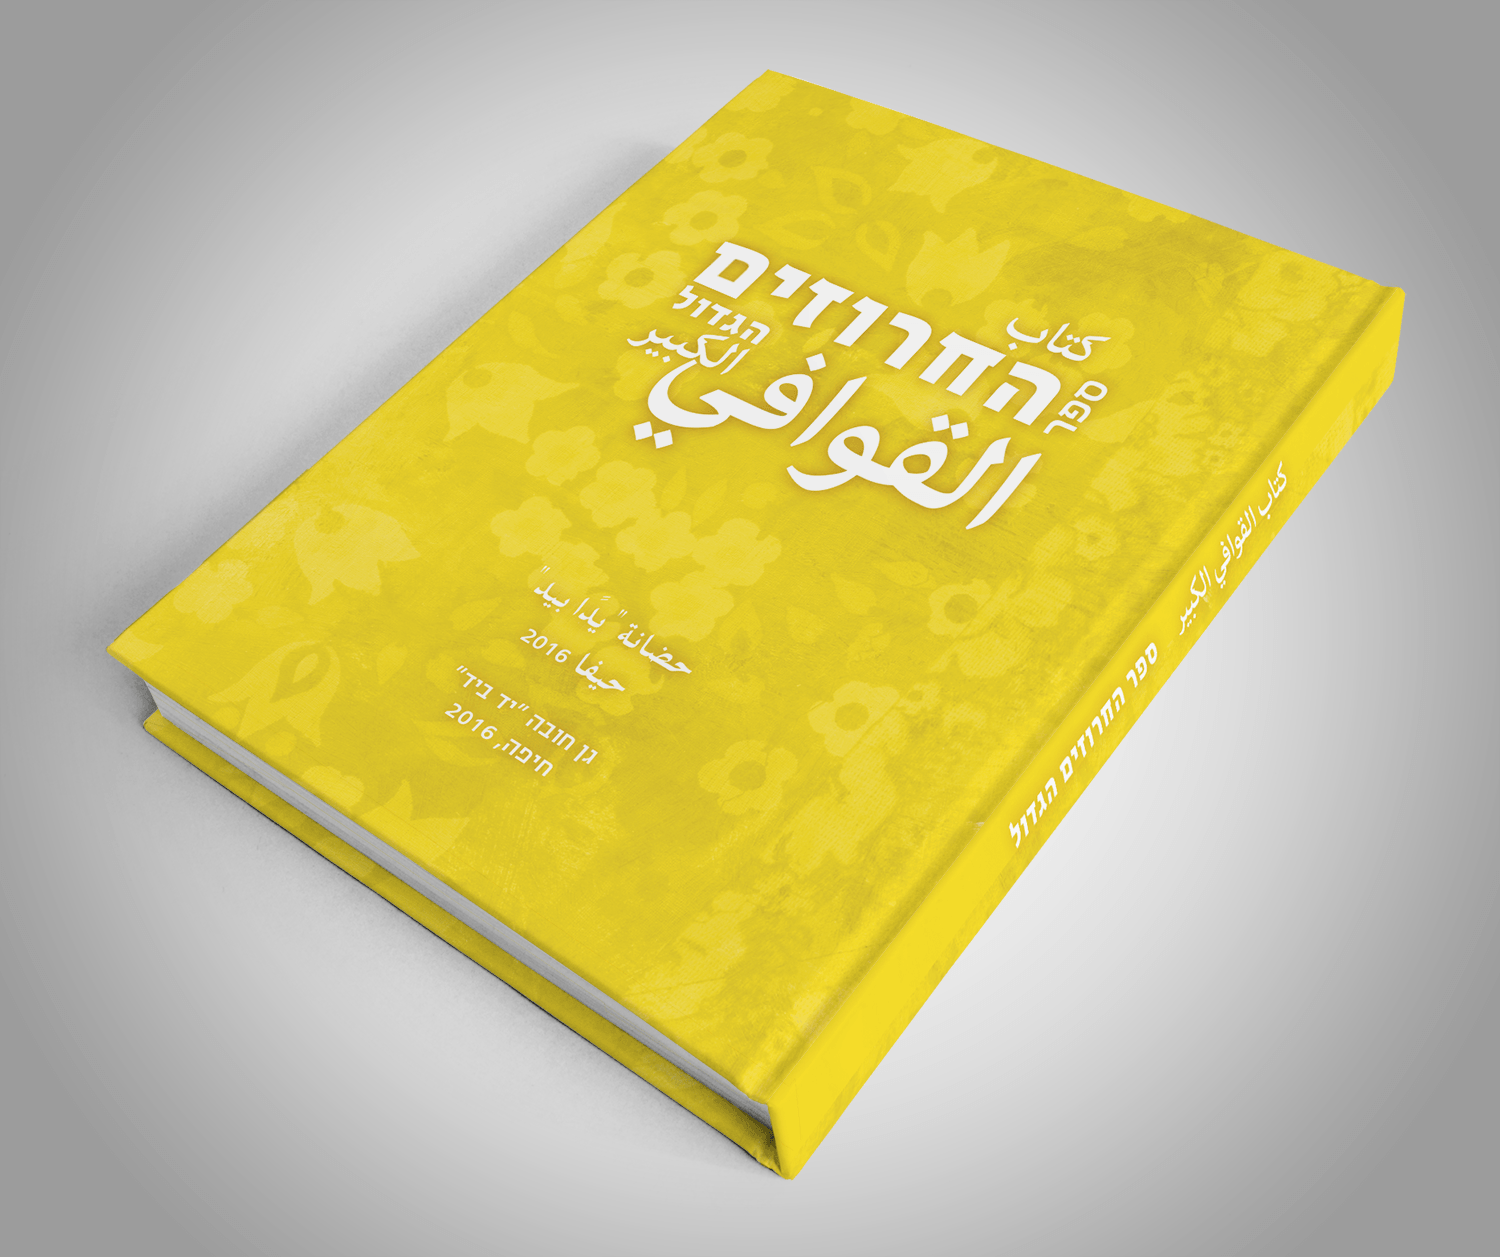 http://bigeyes.co.il/wp-content/uploads/2019/07/shtuzim-book-cover.png